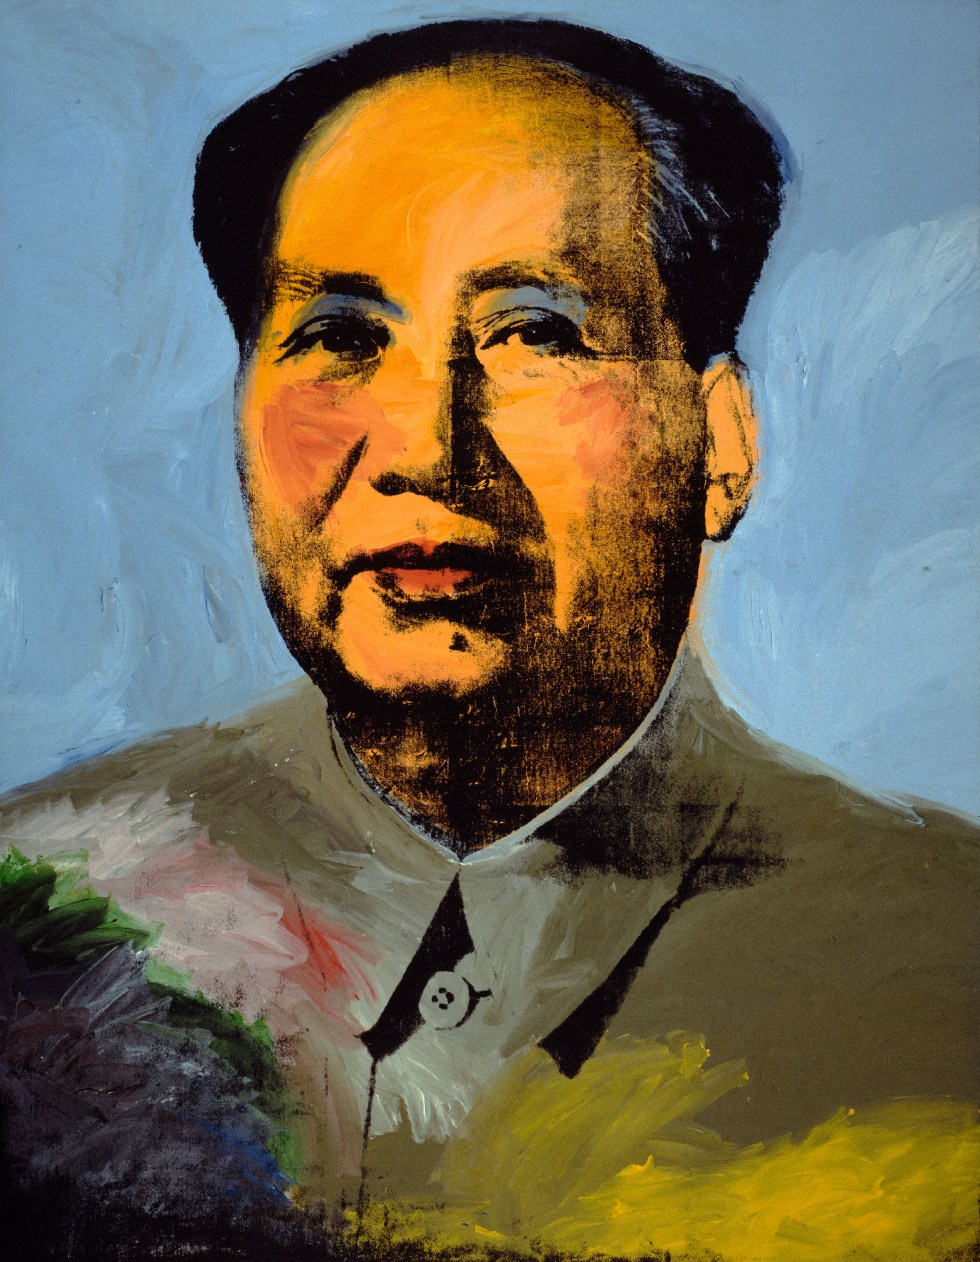 Andy Warhol (1928–1987), Mao, 1972. Acrylic, silkscreen ink, and graphite on linen, 14 ft. 8 1⁄2 in. x 11 ft. 4 1 ⁄2 in. (4.48 x 3.47 m). The Art Institute of Chicago; Mr. and Mrs. Frank G. Logan Purchase Prize and Wilson L. Mead funds, 1974.230 © The Andy Warhol Foundation for the Visual Arts, Inc. / Artists Rights Society (ARS) New York